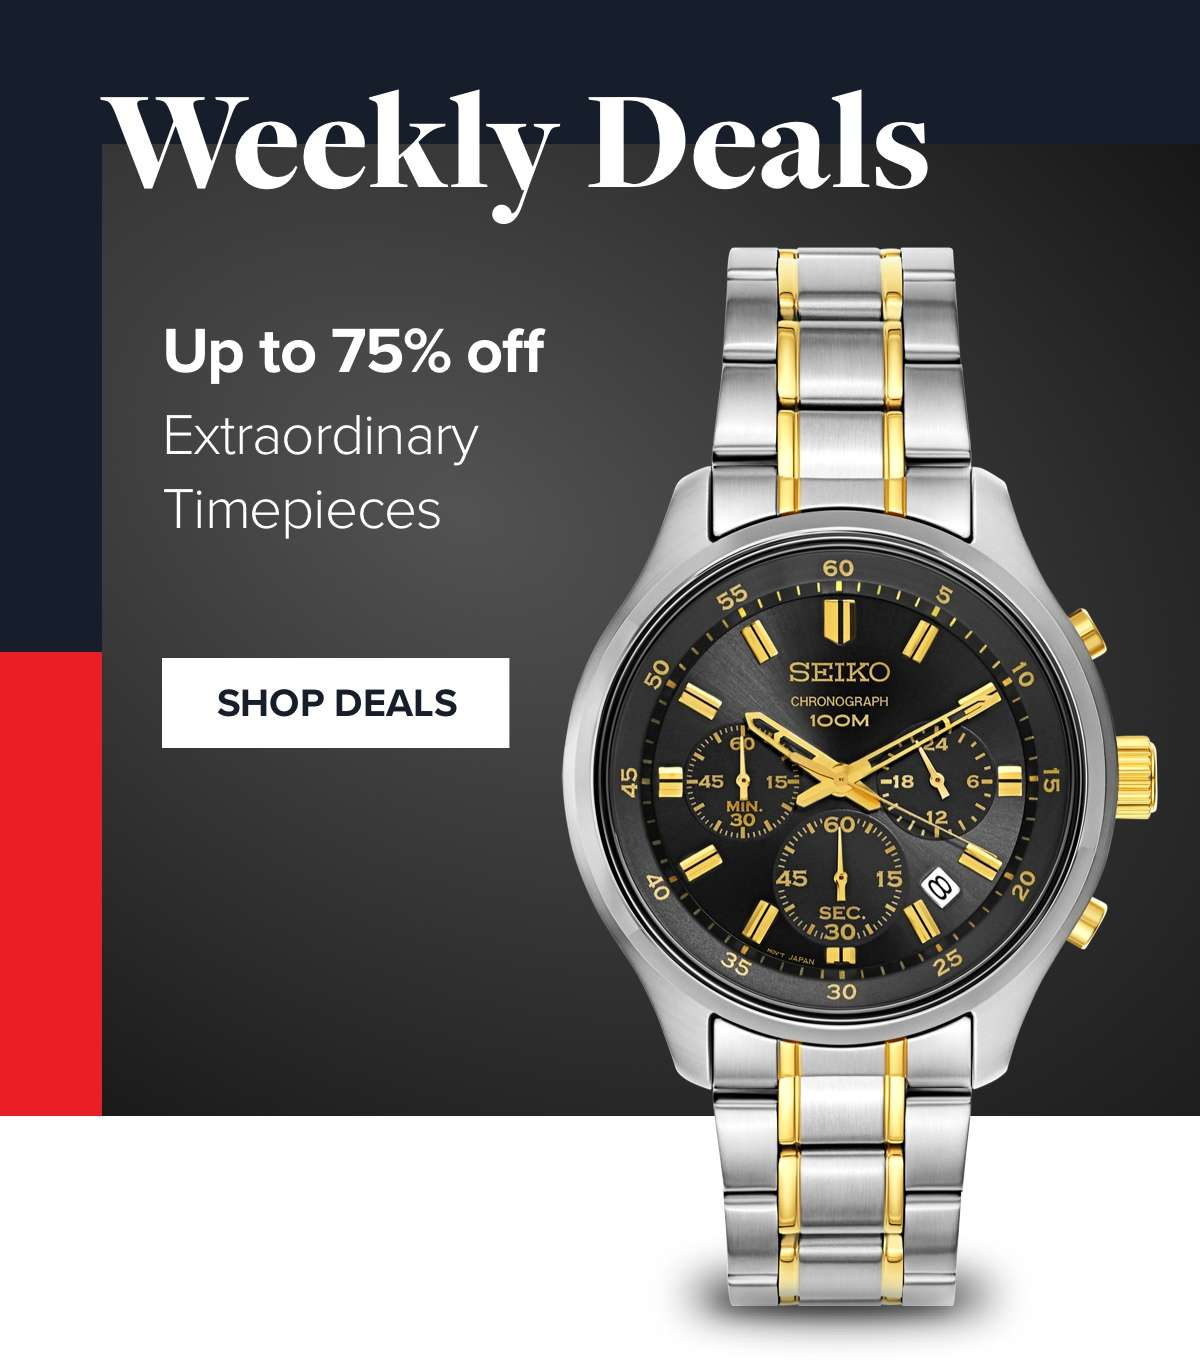 Exceptional Savings on Extraordinary Timepieces